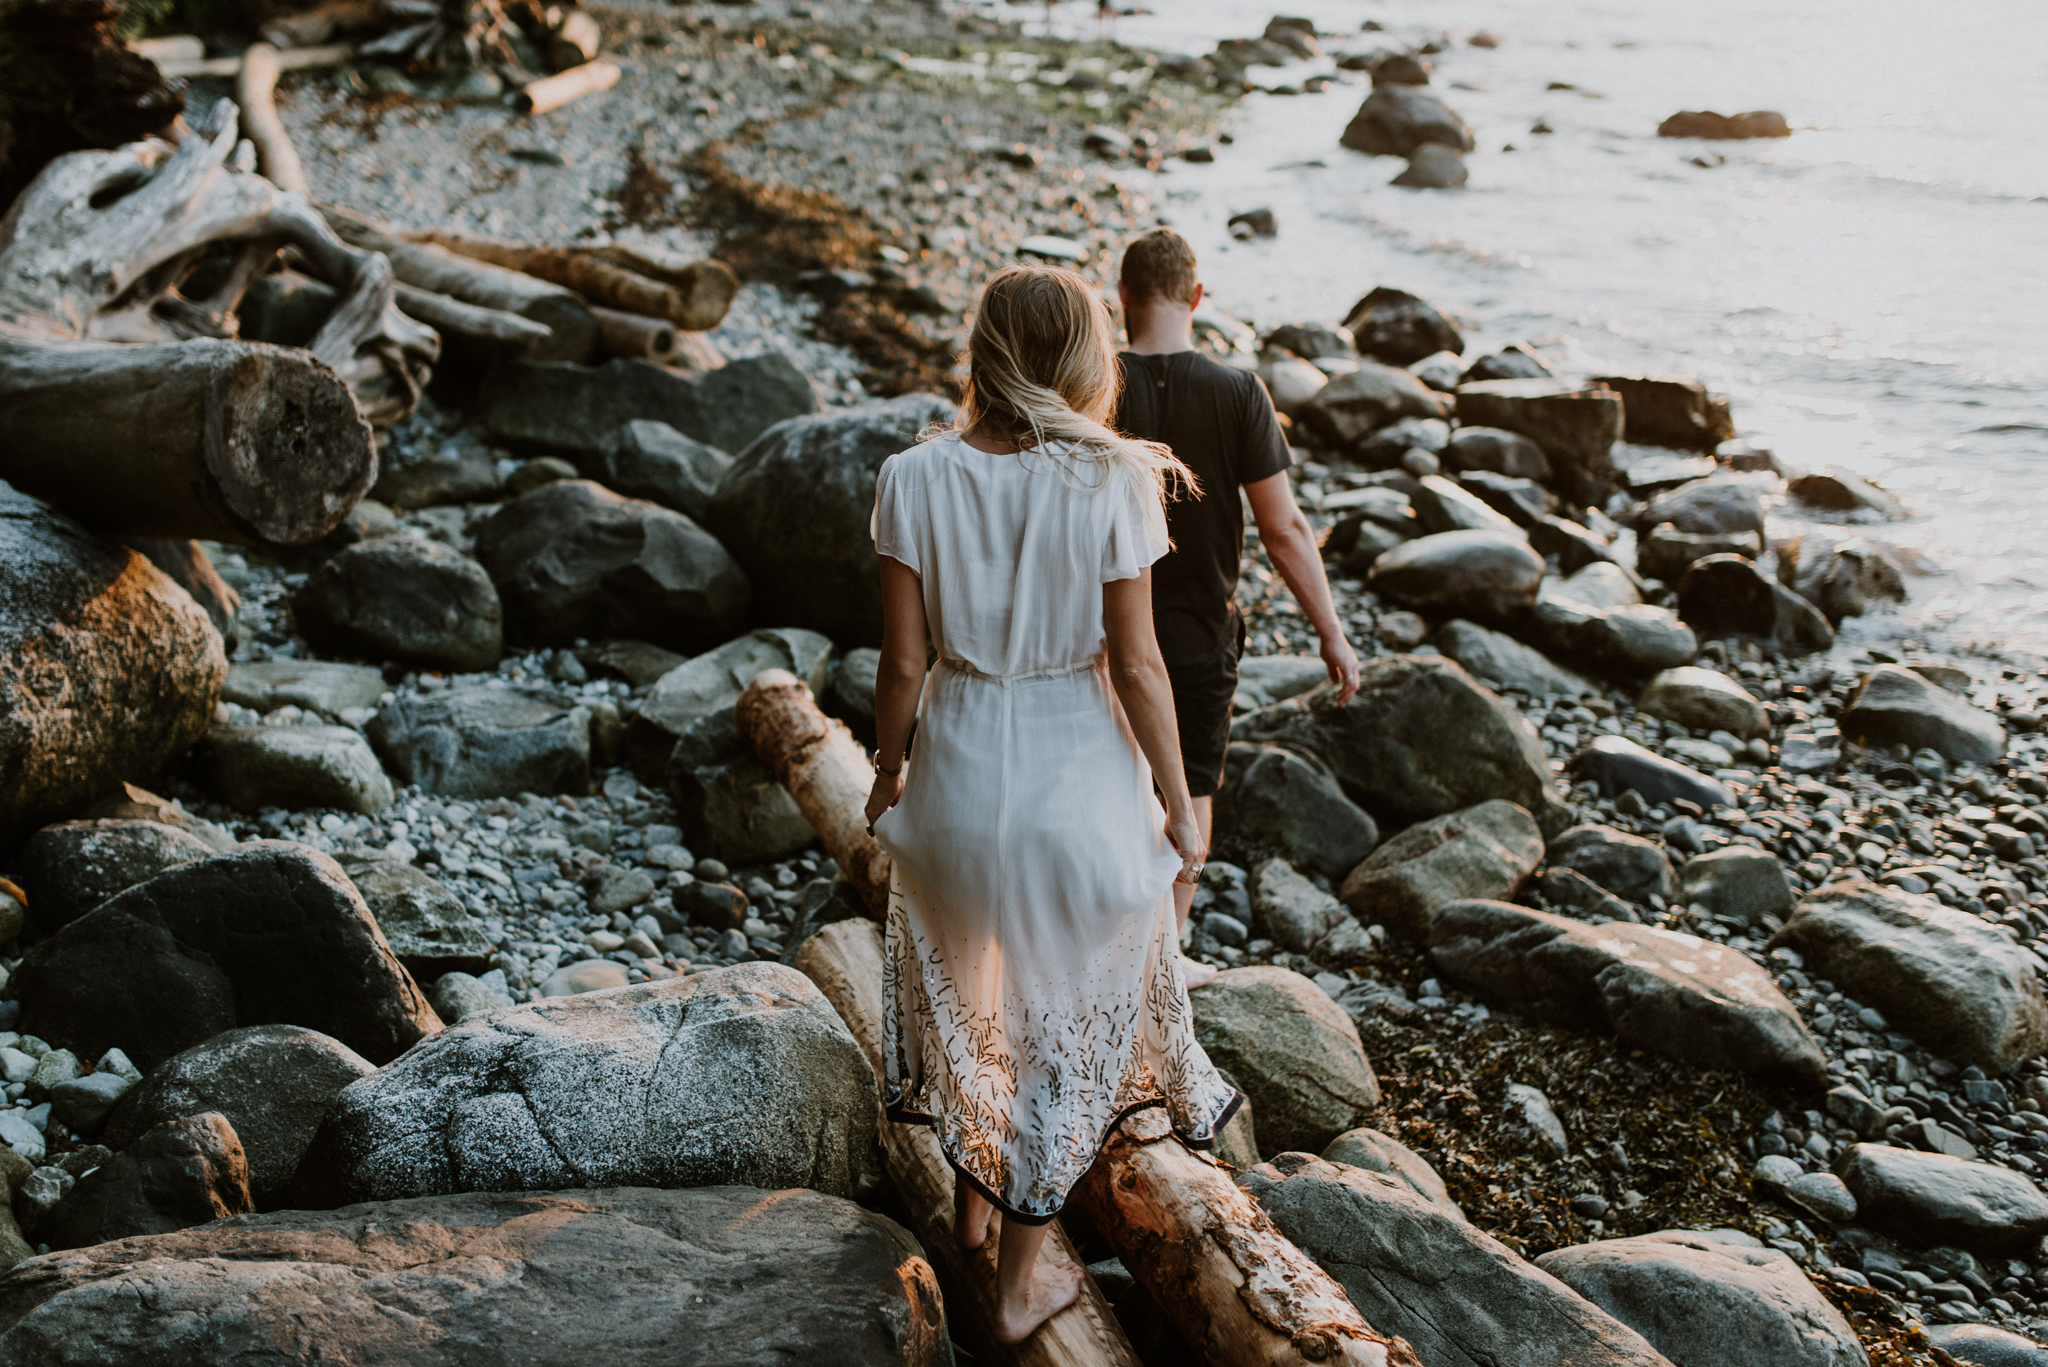 056_StacieCarrPhotography_vancouver-elopement-photographer-adventurous-engagement-smoke-bomb-beach.jpg